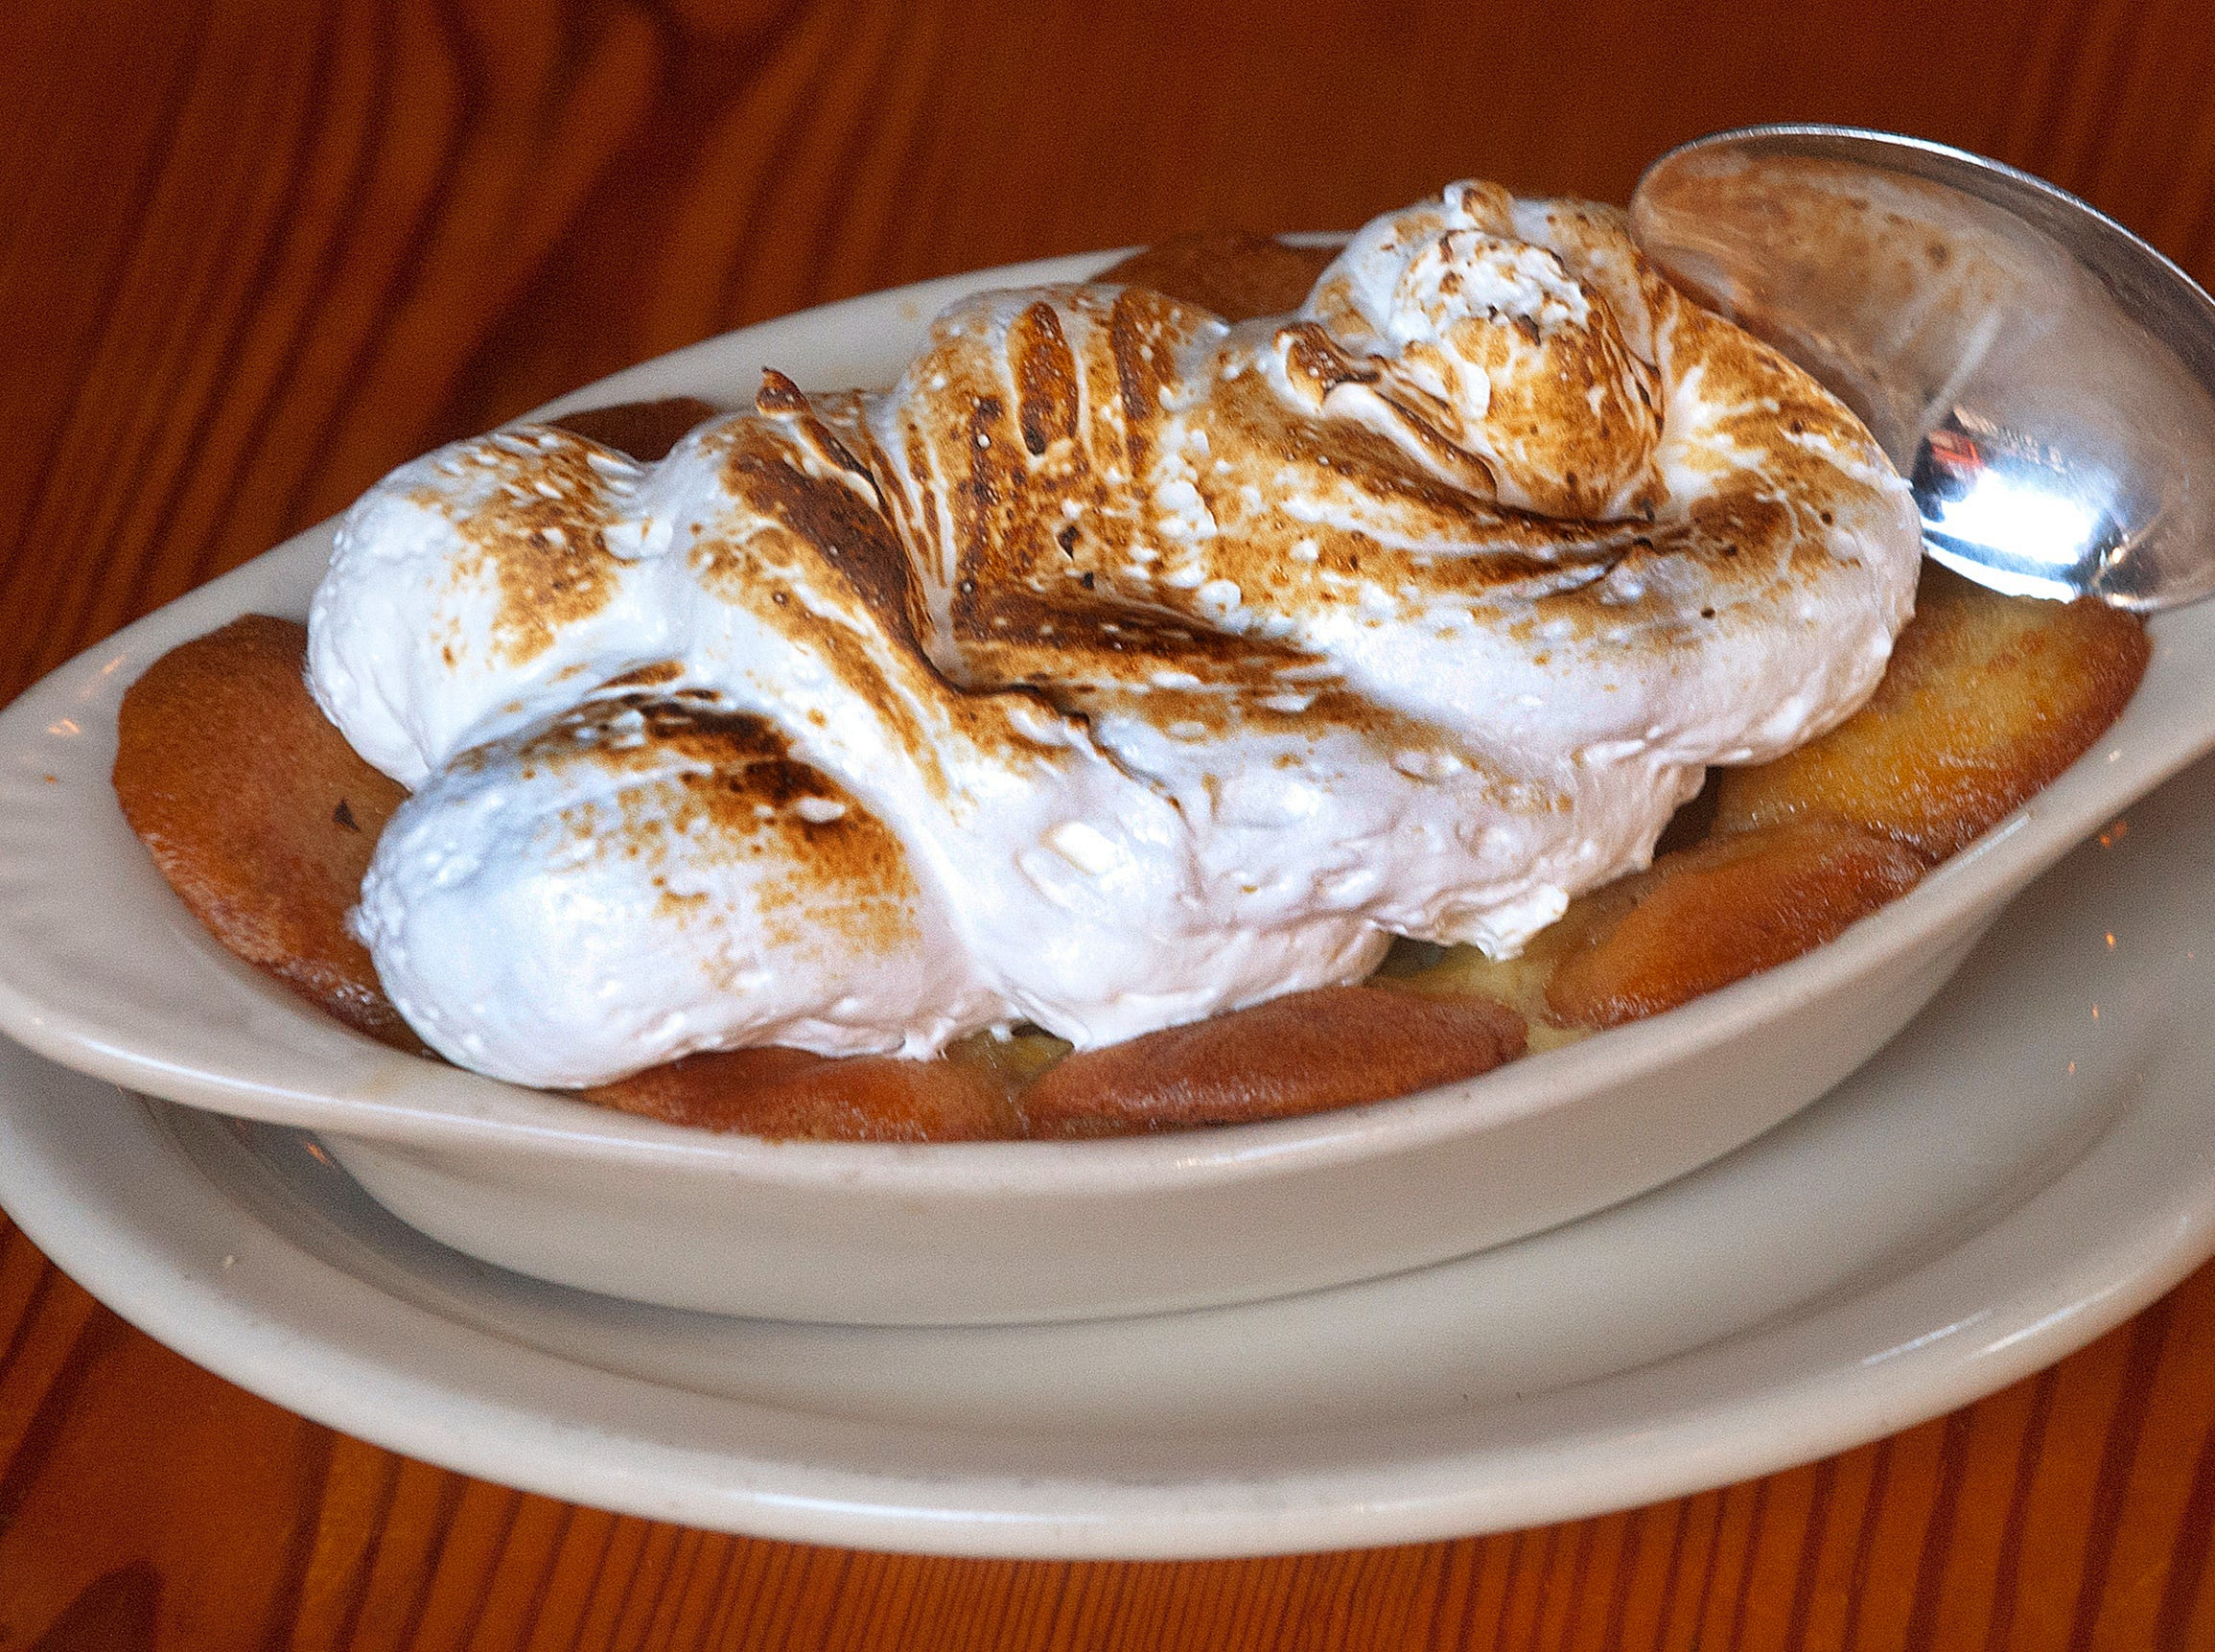 The banana pudding desert at the Silver Dollar Bar and Restaurant is made with a Bourbon custard, vanilla wafers, sliced bananas and topped with a toasted Italian meringue.